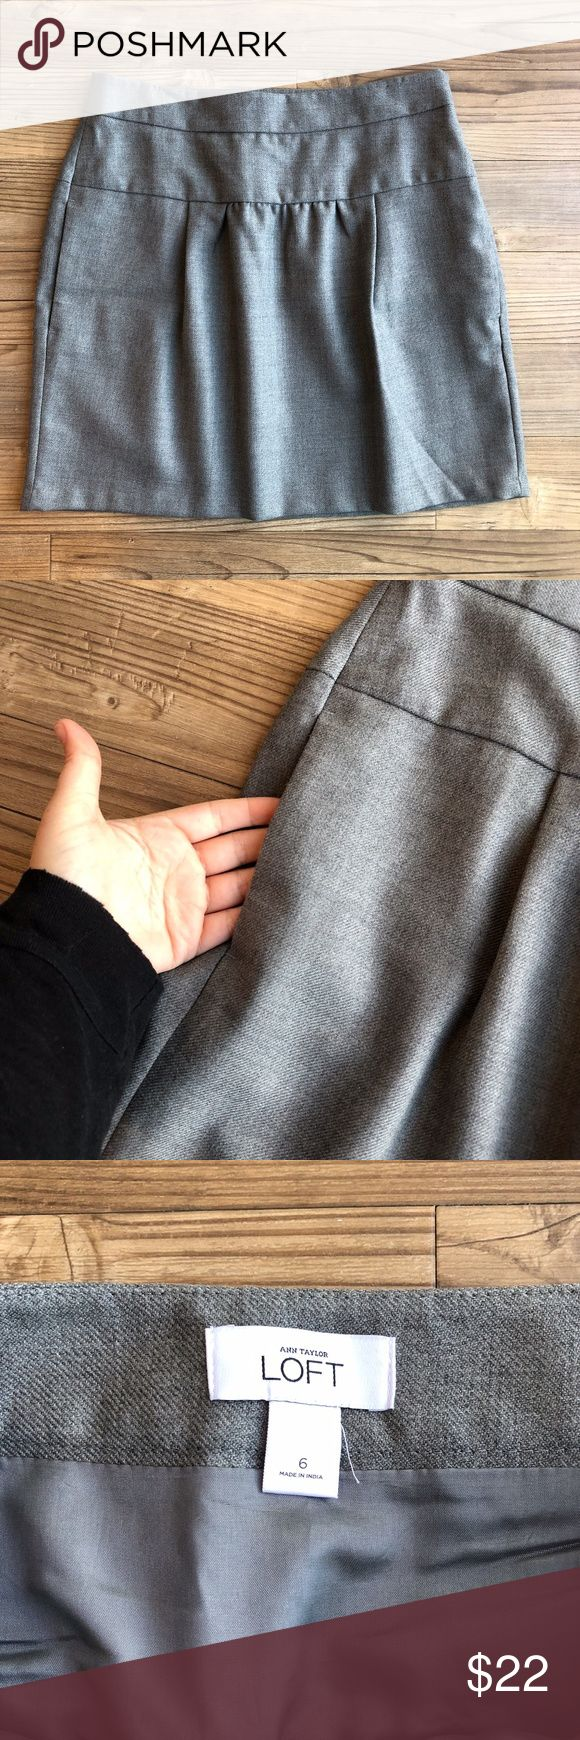 "Ann Taylor LOFT Skirt w/Pockets Women's Ann Taylor LOFT Skirt Size 6 Gray Pockets Side zip closure Above the knee length Lined Puckered front No stains or holes Nonsmoking home  Approx Measurements: 16"" Waist Flat 23"" Hips 18"" Side length  BLR sku: 042354101774 LOFT Skirts Midi"